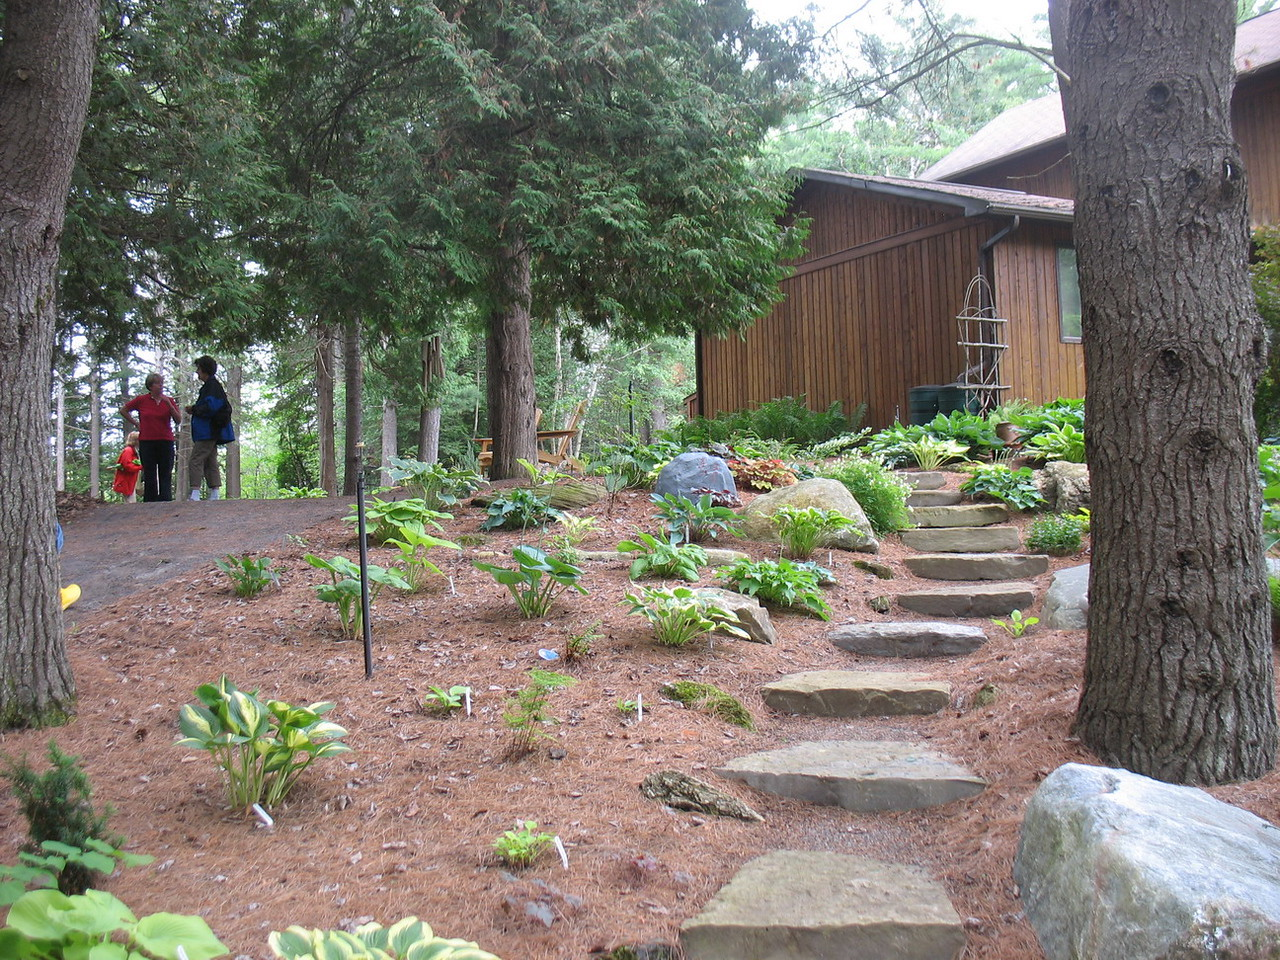 One of her newer gardens where the hostas are not so large.